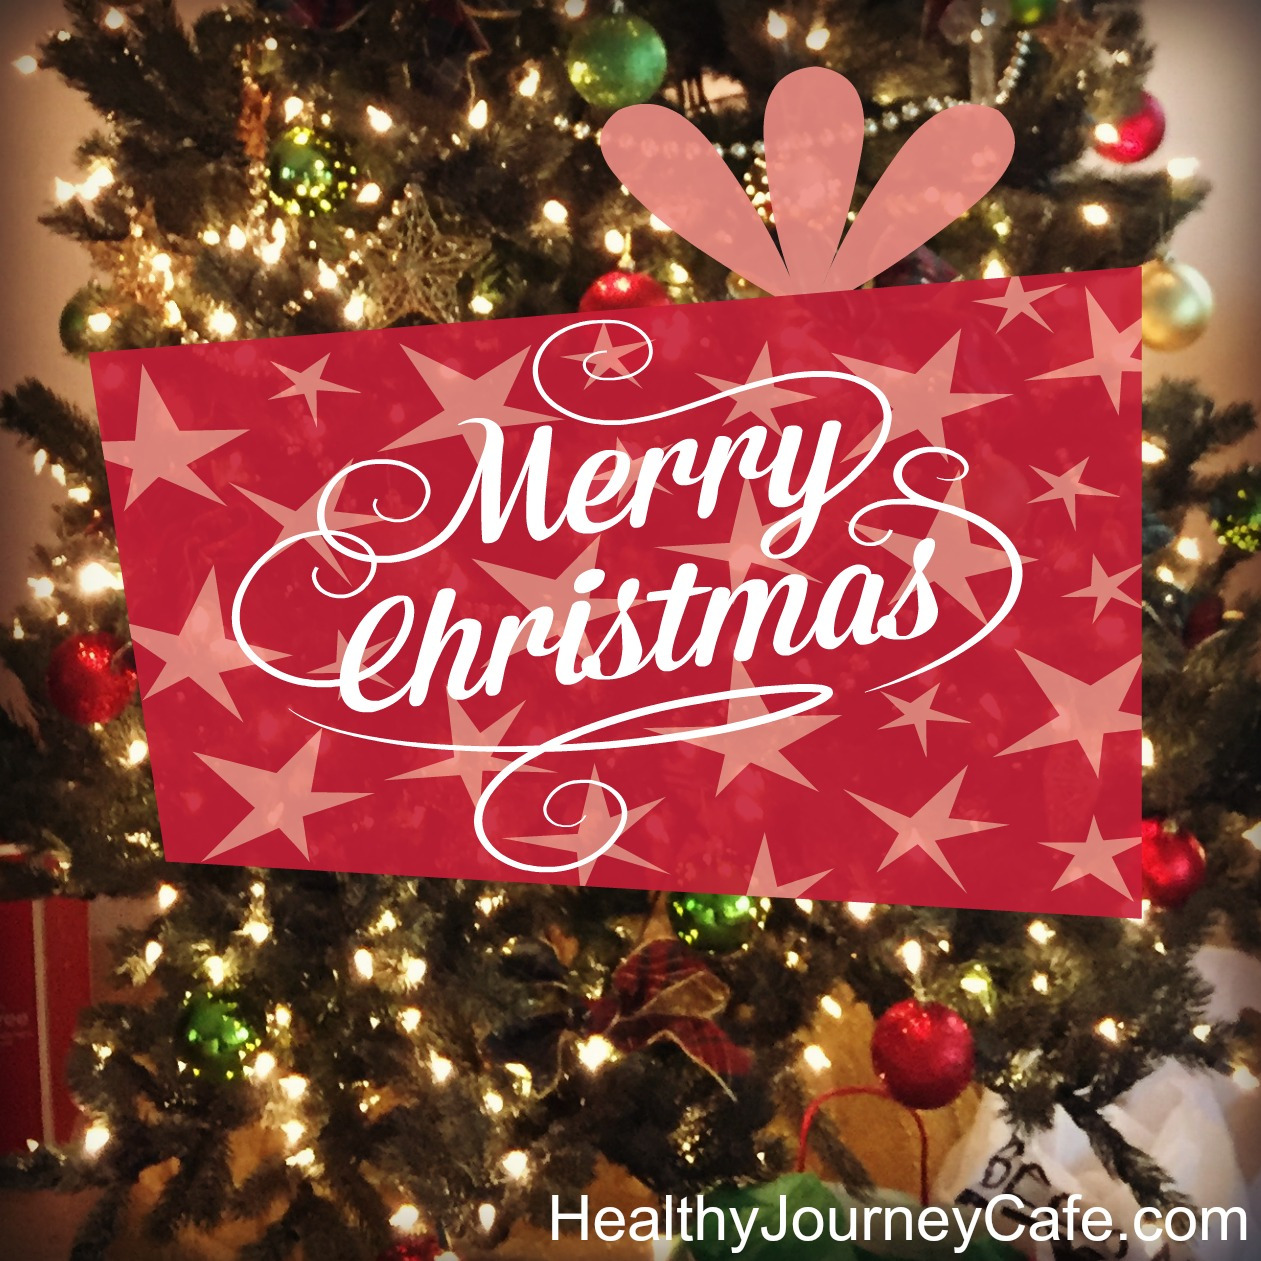 Merry christmas happy new year healthy journey cafe for Happy christmas vs merry christmas